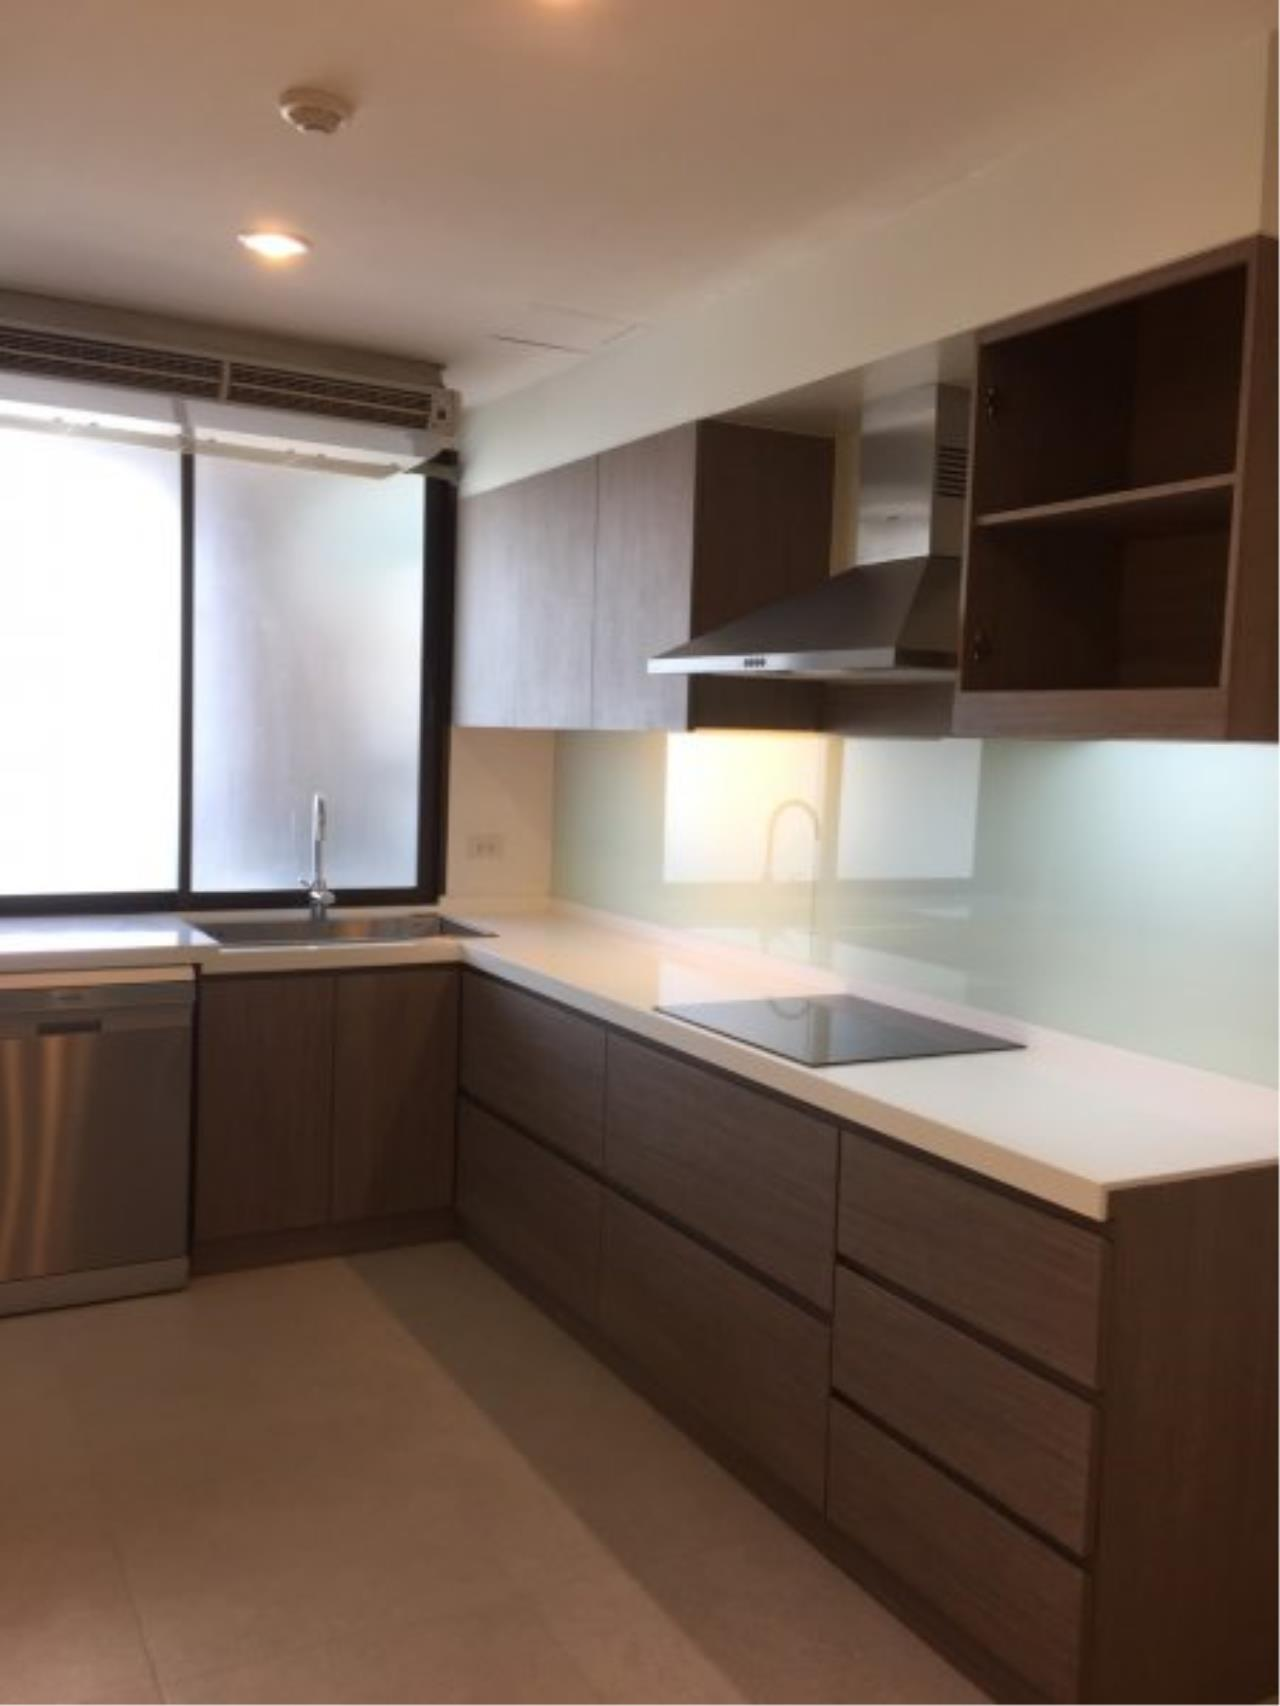 Piri Property Agency's Huge 3 Bedrooms in the Prime Mansion Condo for sale on high floor 6